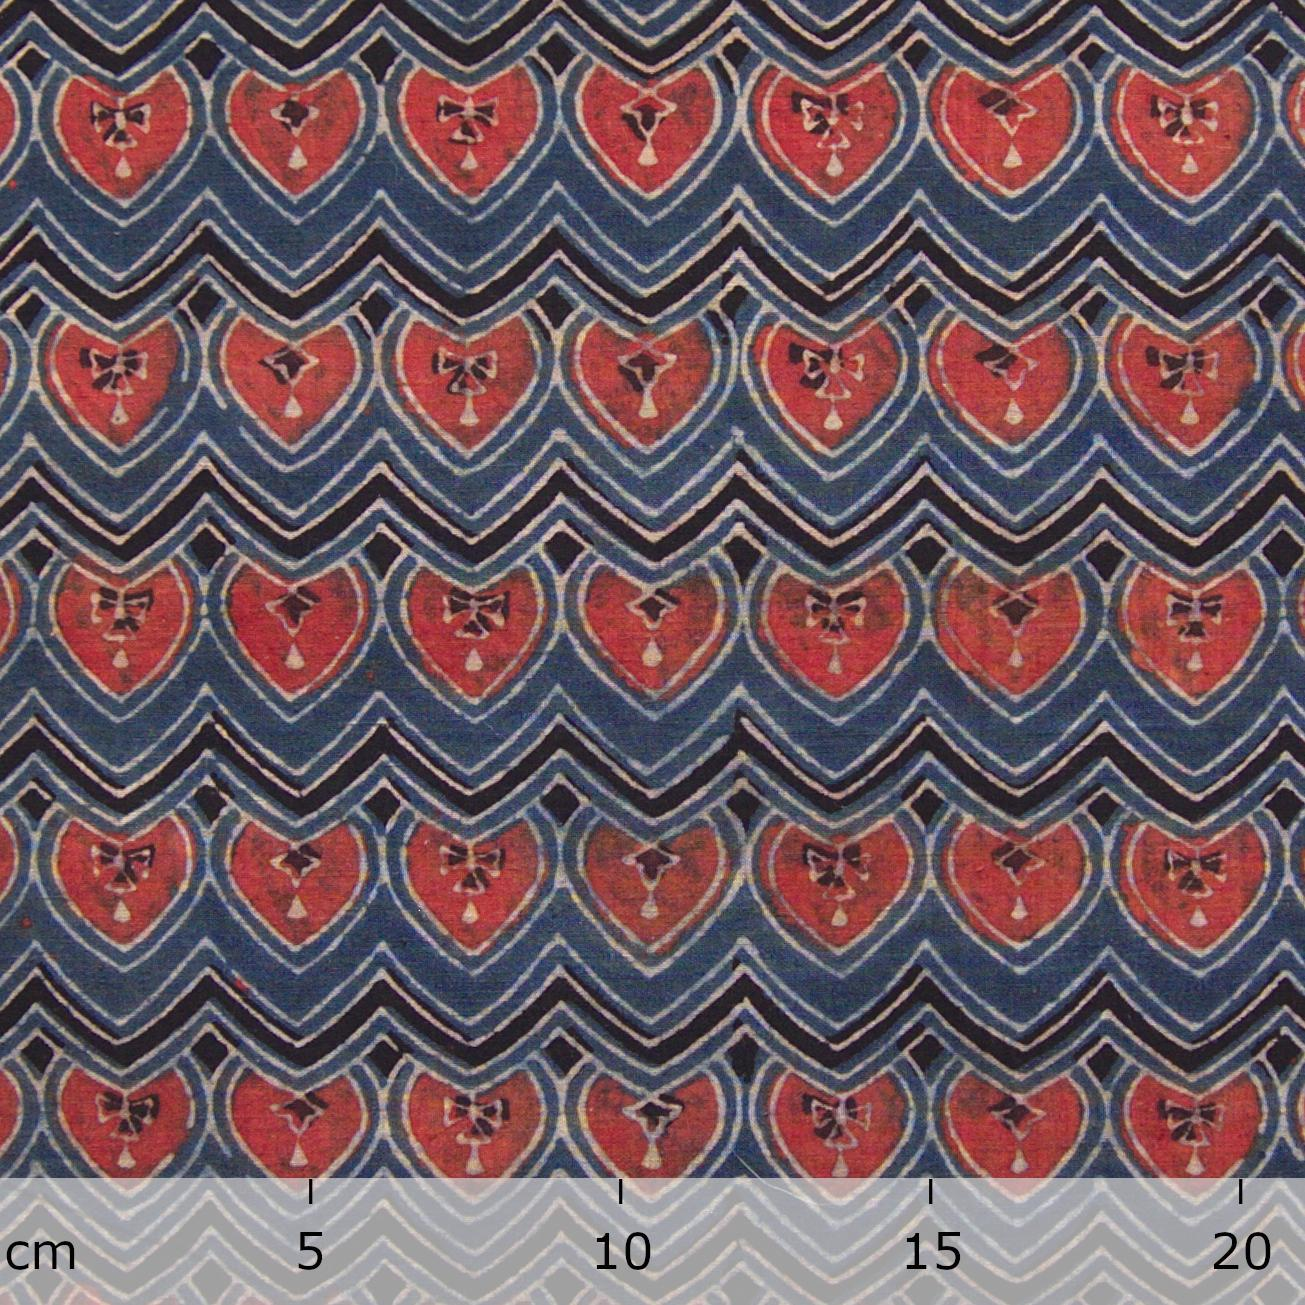 Block Printed Fabric, 100% Cotton, Ajrak Design: Indigo Blue Base, Black Wave, Red Spade. Ruler